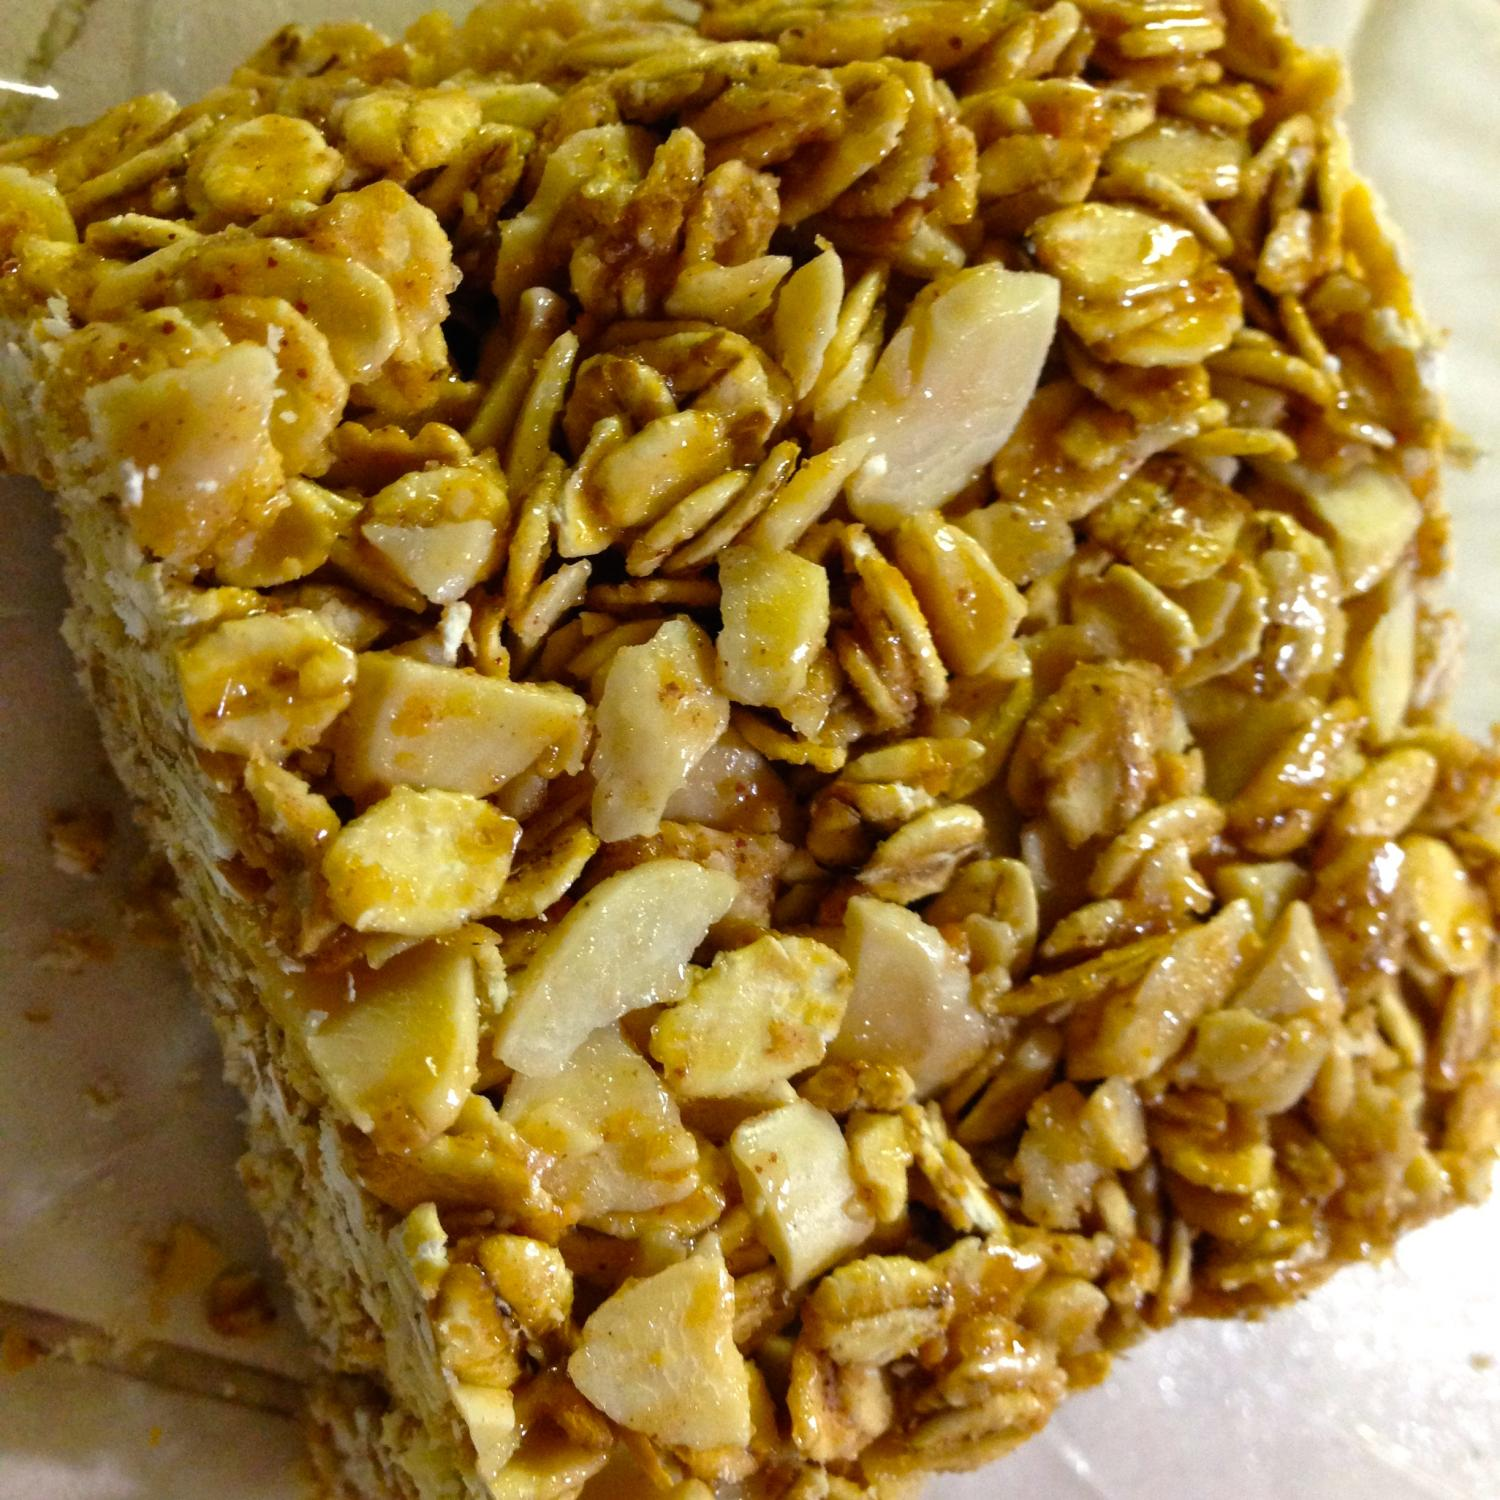 ©2015 Chez Hedwige healthy, gluten free, soy free, dairy free, bars, granola, energy